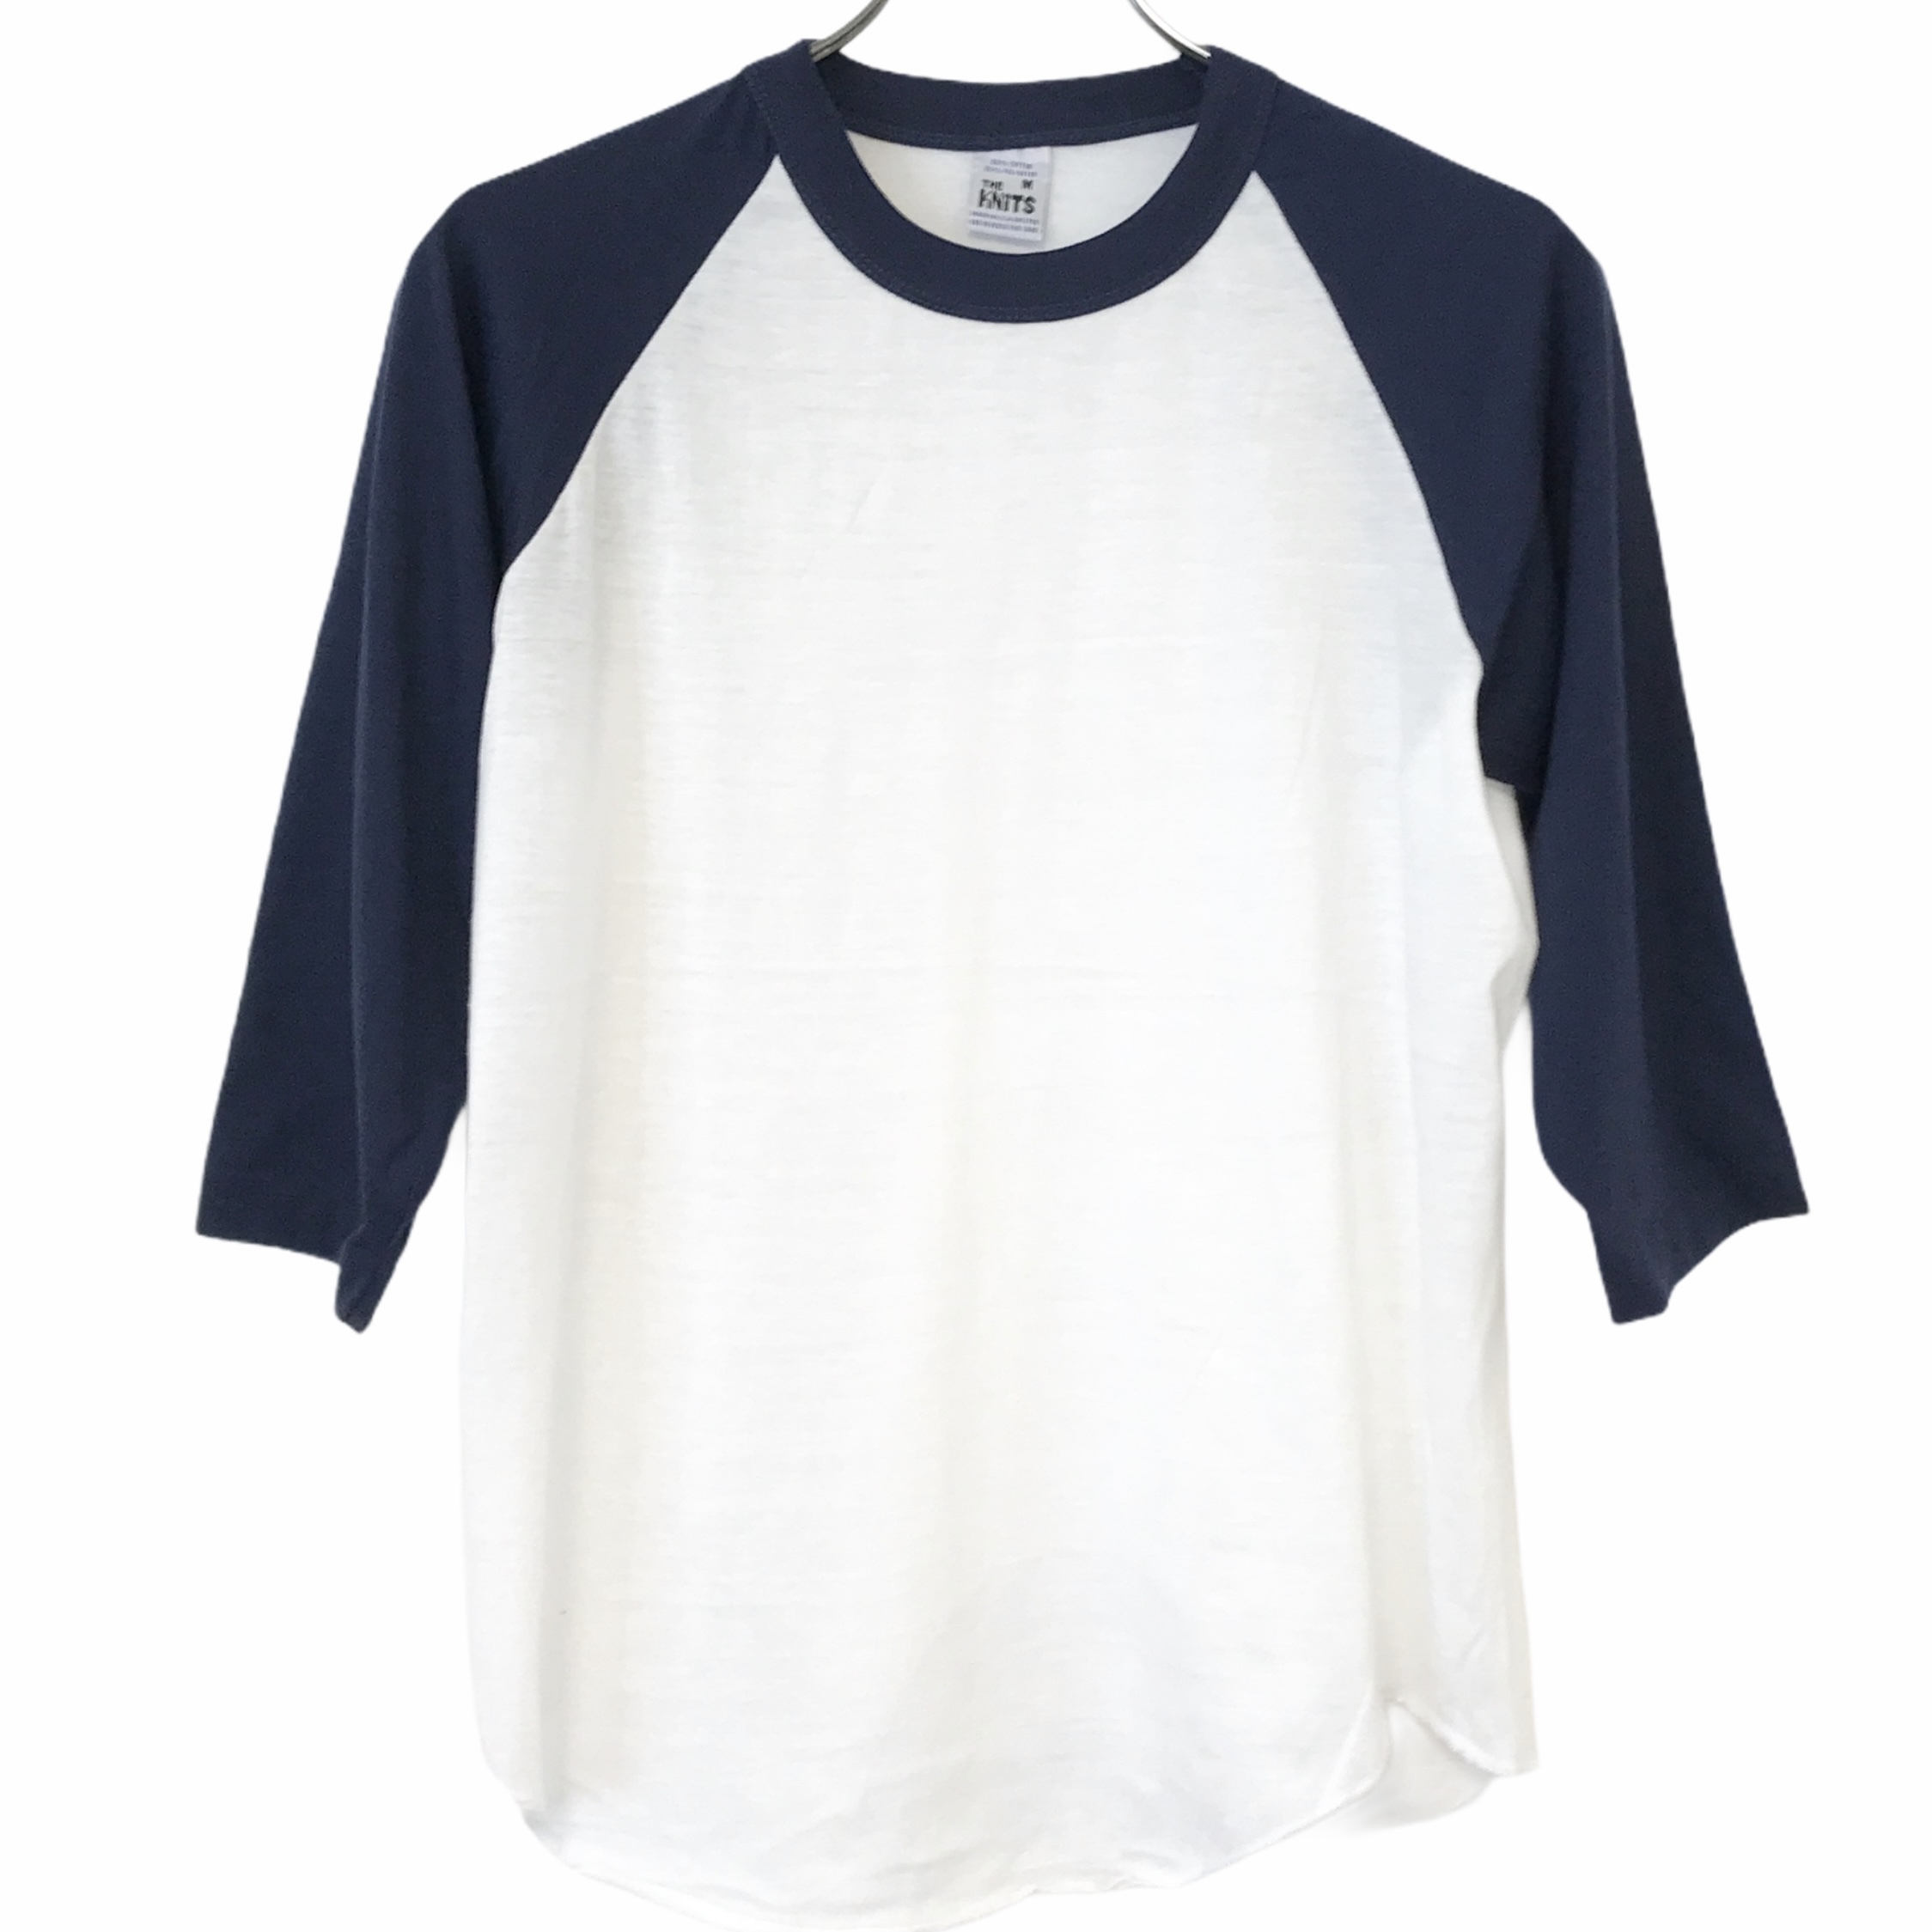 Dead Stock! 80's THE KNITS Raglan T-shirt made in USA size M White/Navy